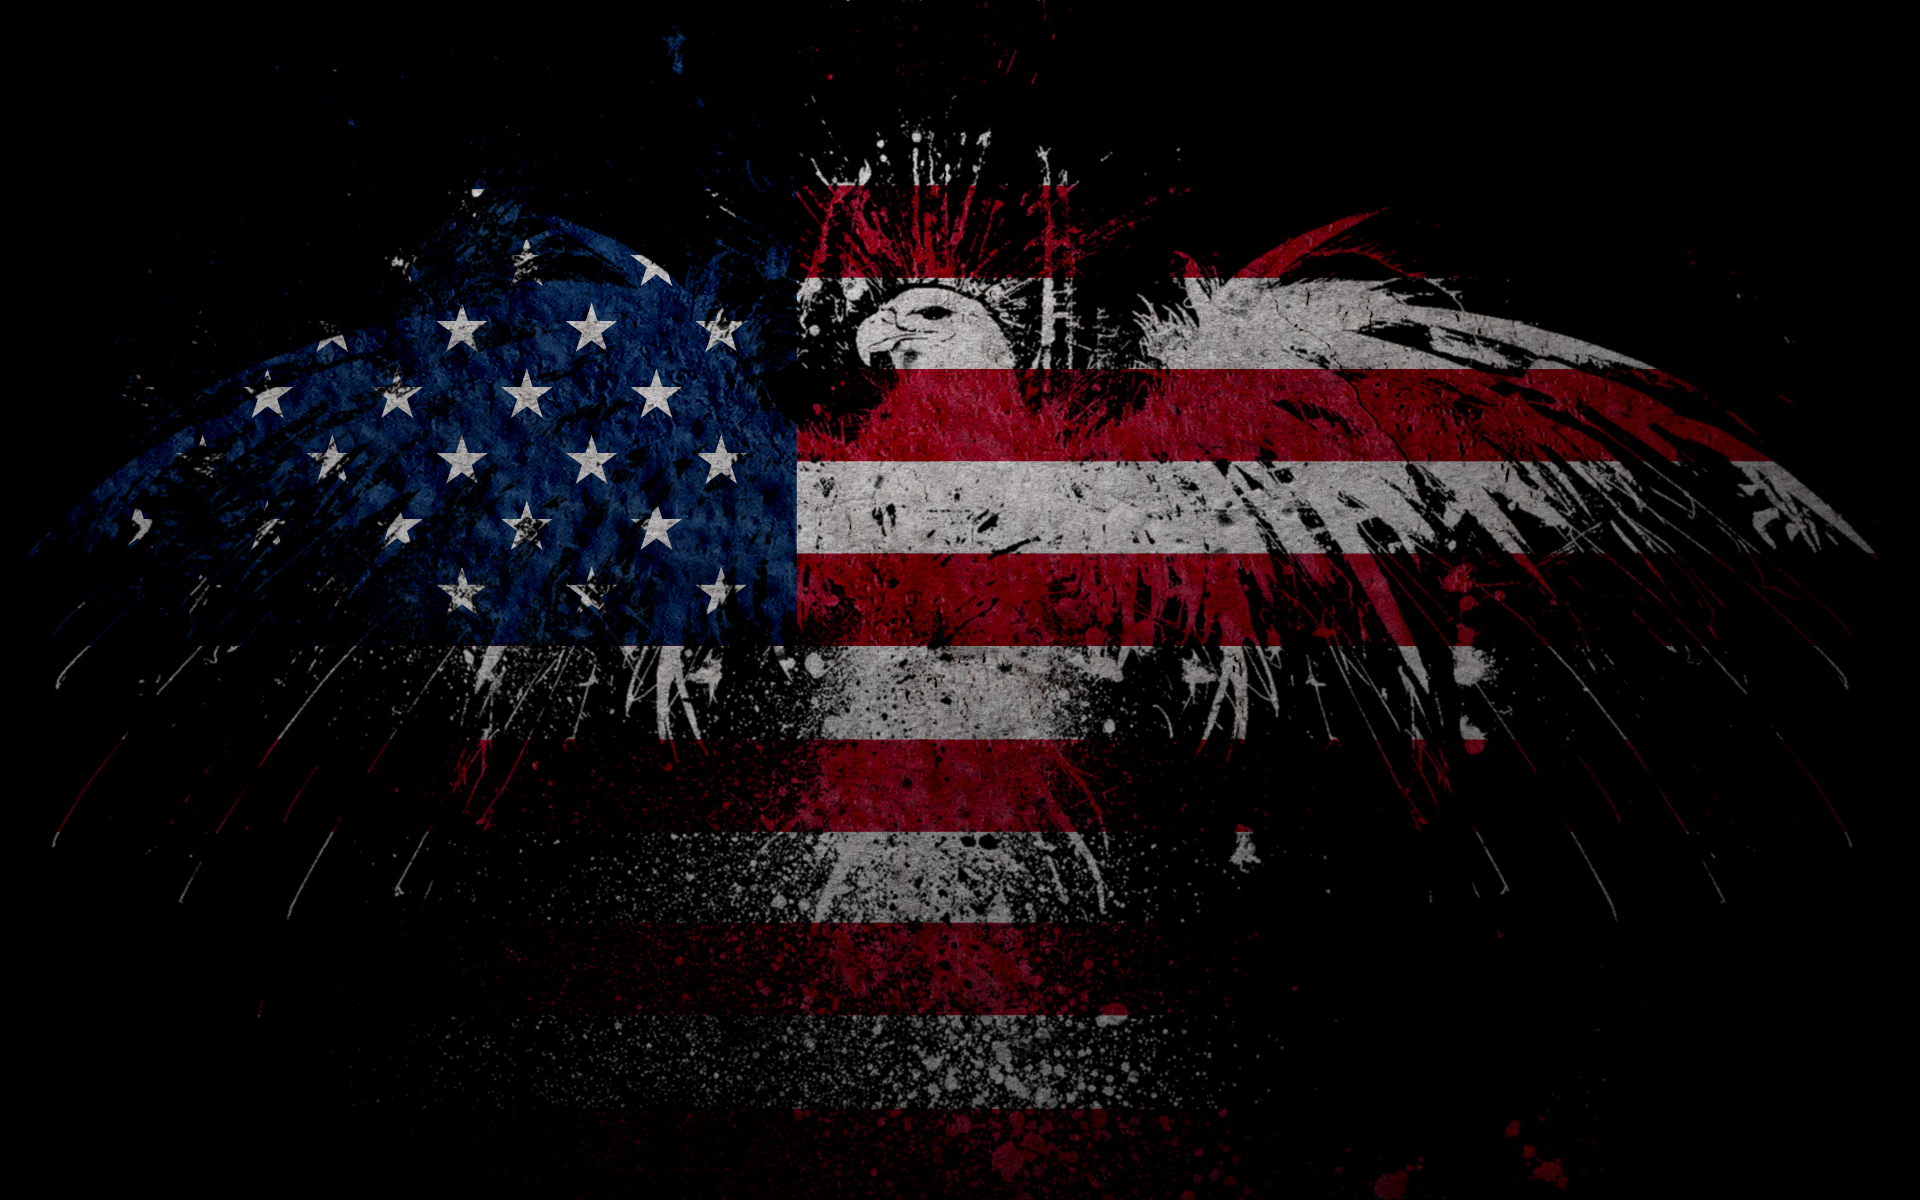 American Desktop Wallpaper - WallpaperSafari